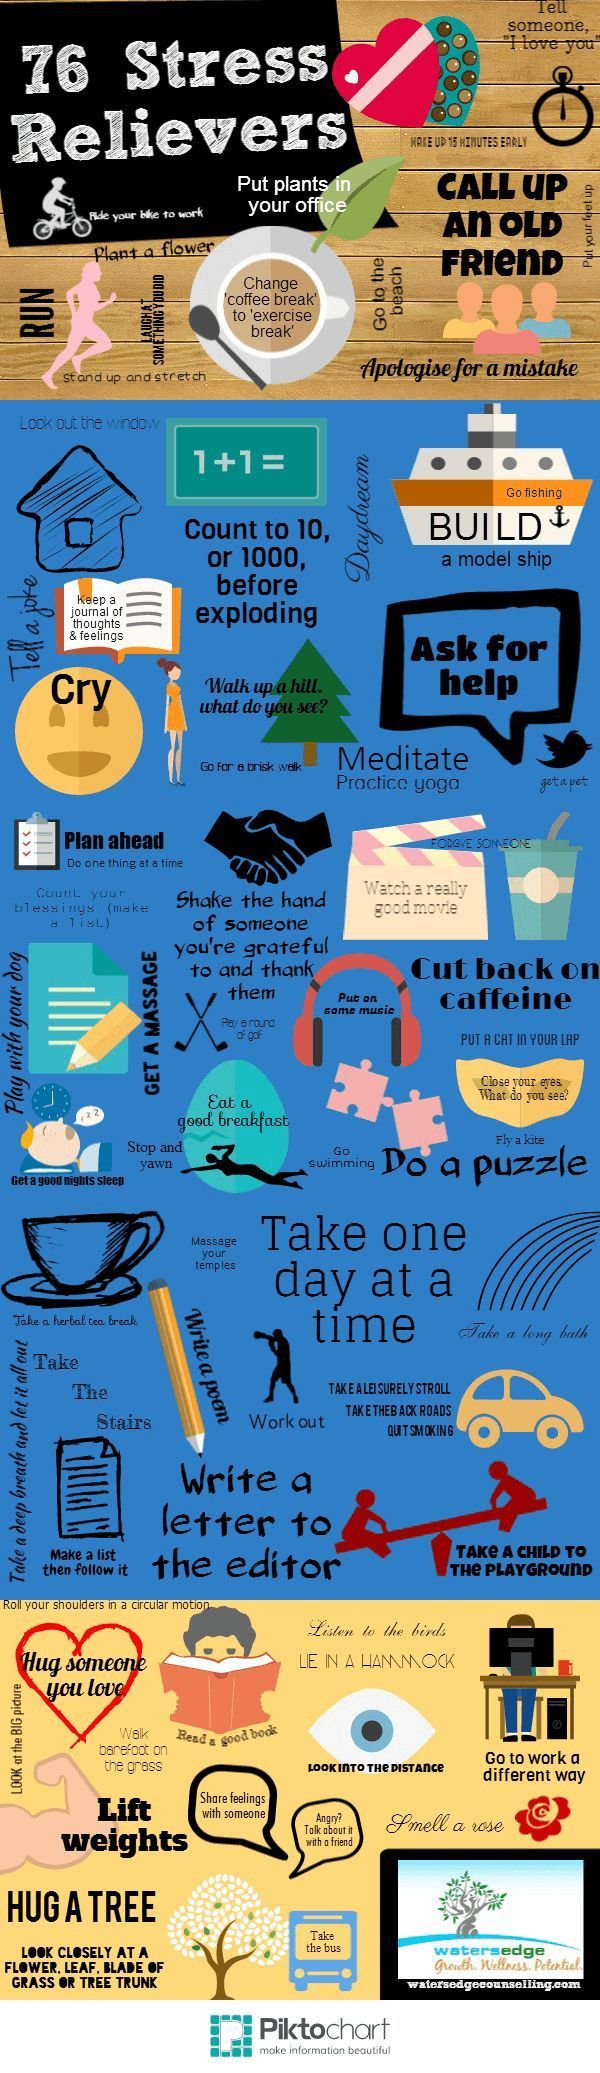 76 Stress Relievers happy life happiness positive emotions healthy stress lifestyle health mental health healthy living remedies remedy infographic self improvement infographics self help emotional health